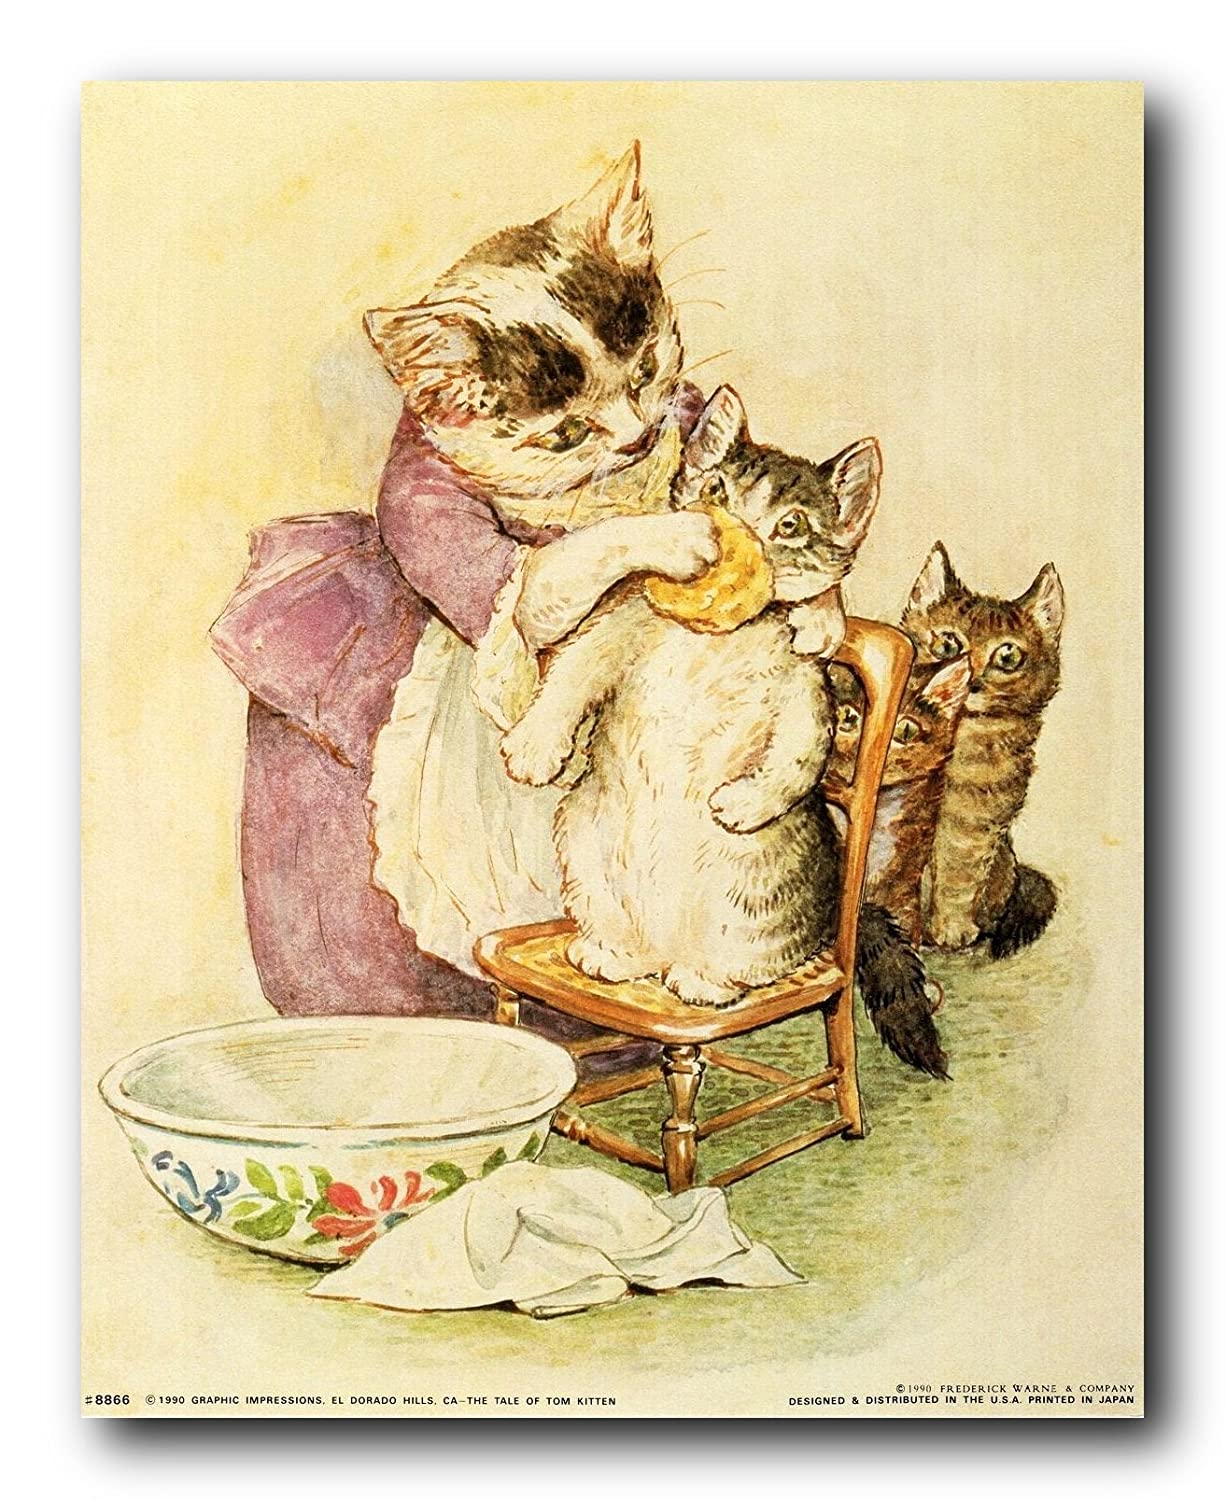 Amazon.com: The Tale of Tom Kitten Beatrix Potter Kids Room Art ...